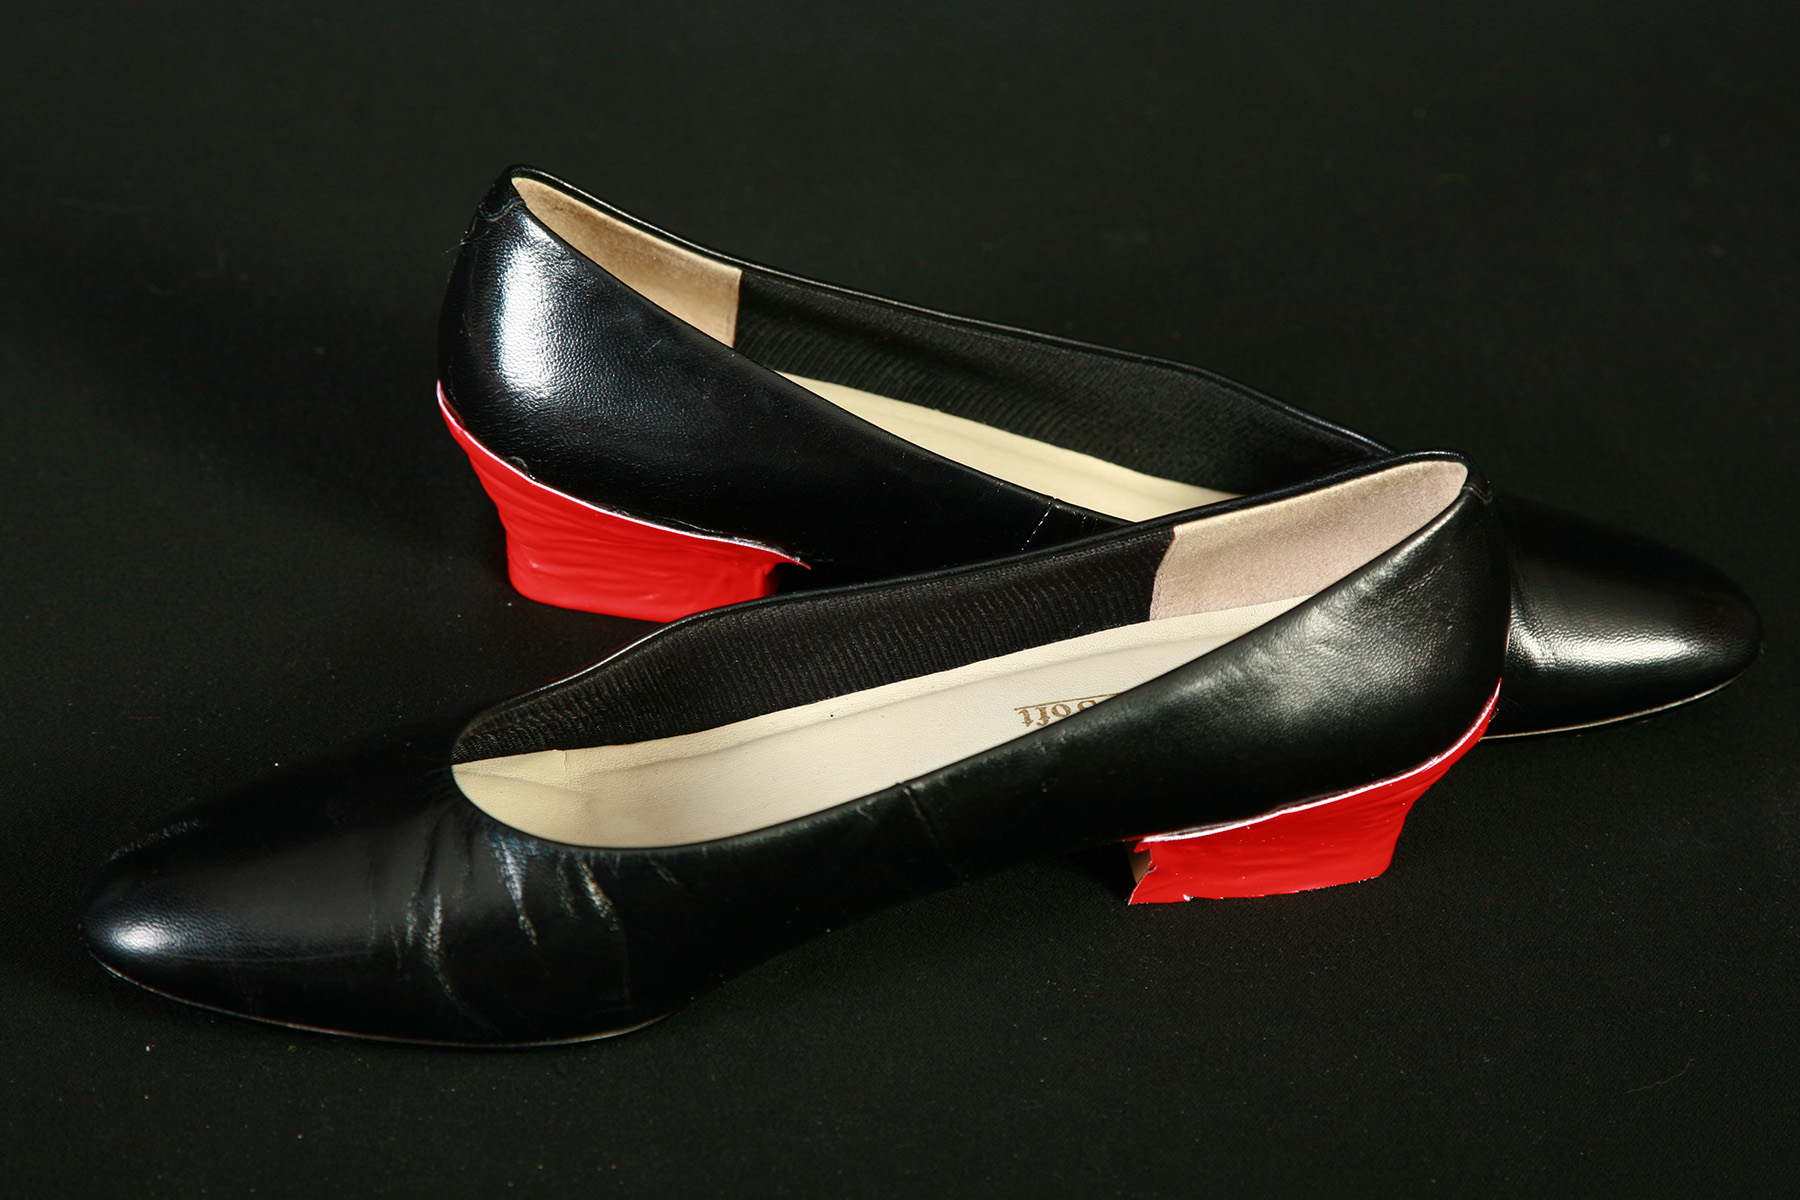 Two black shoes with red fabric covering the heels.